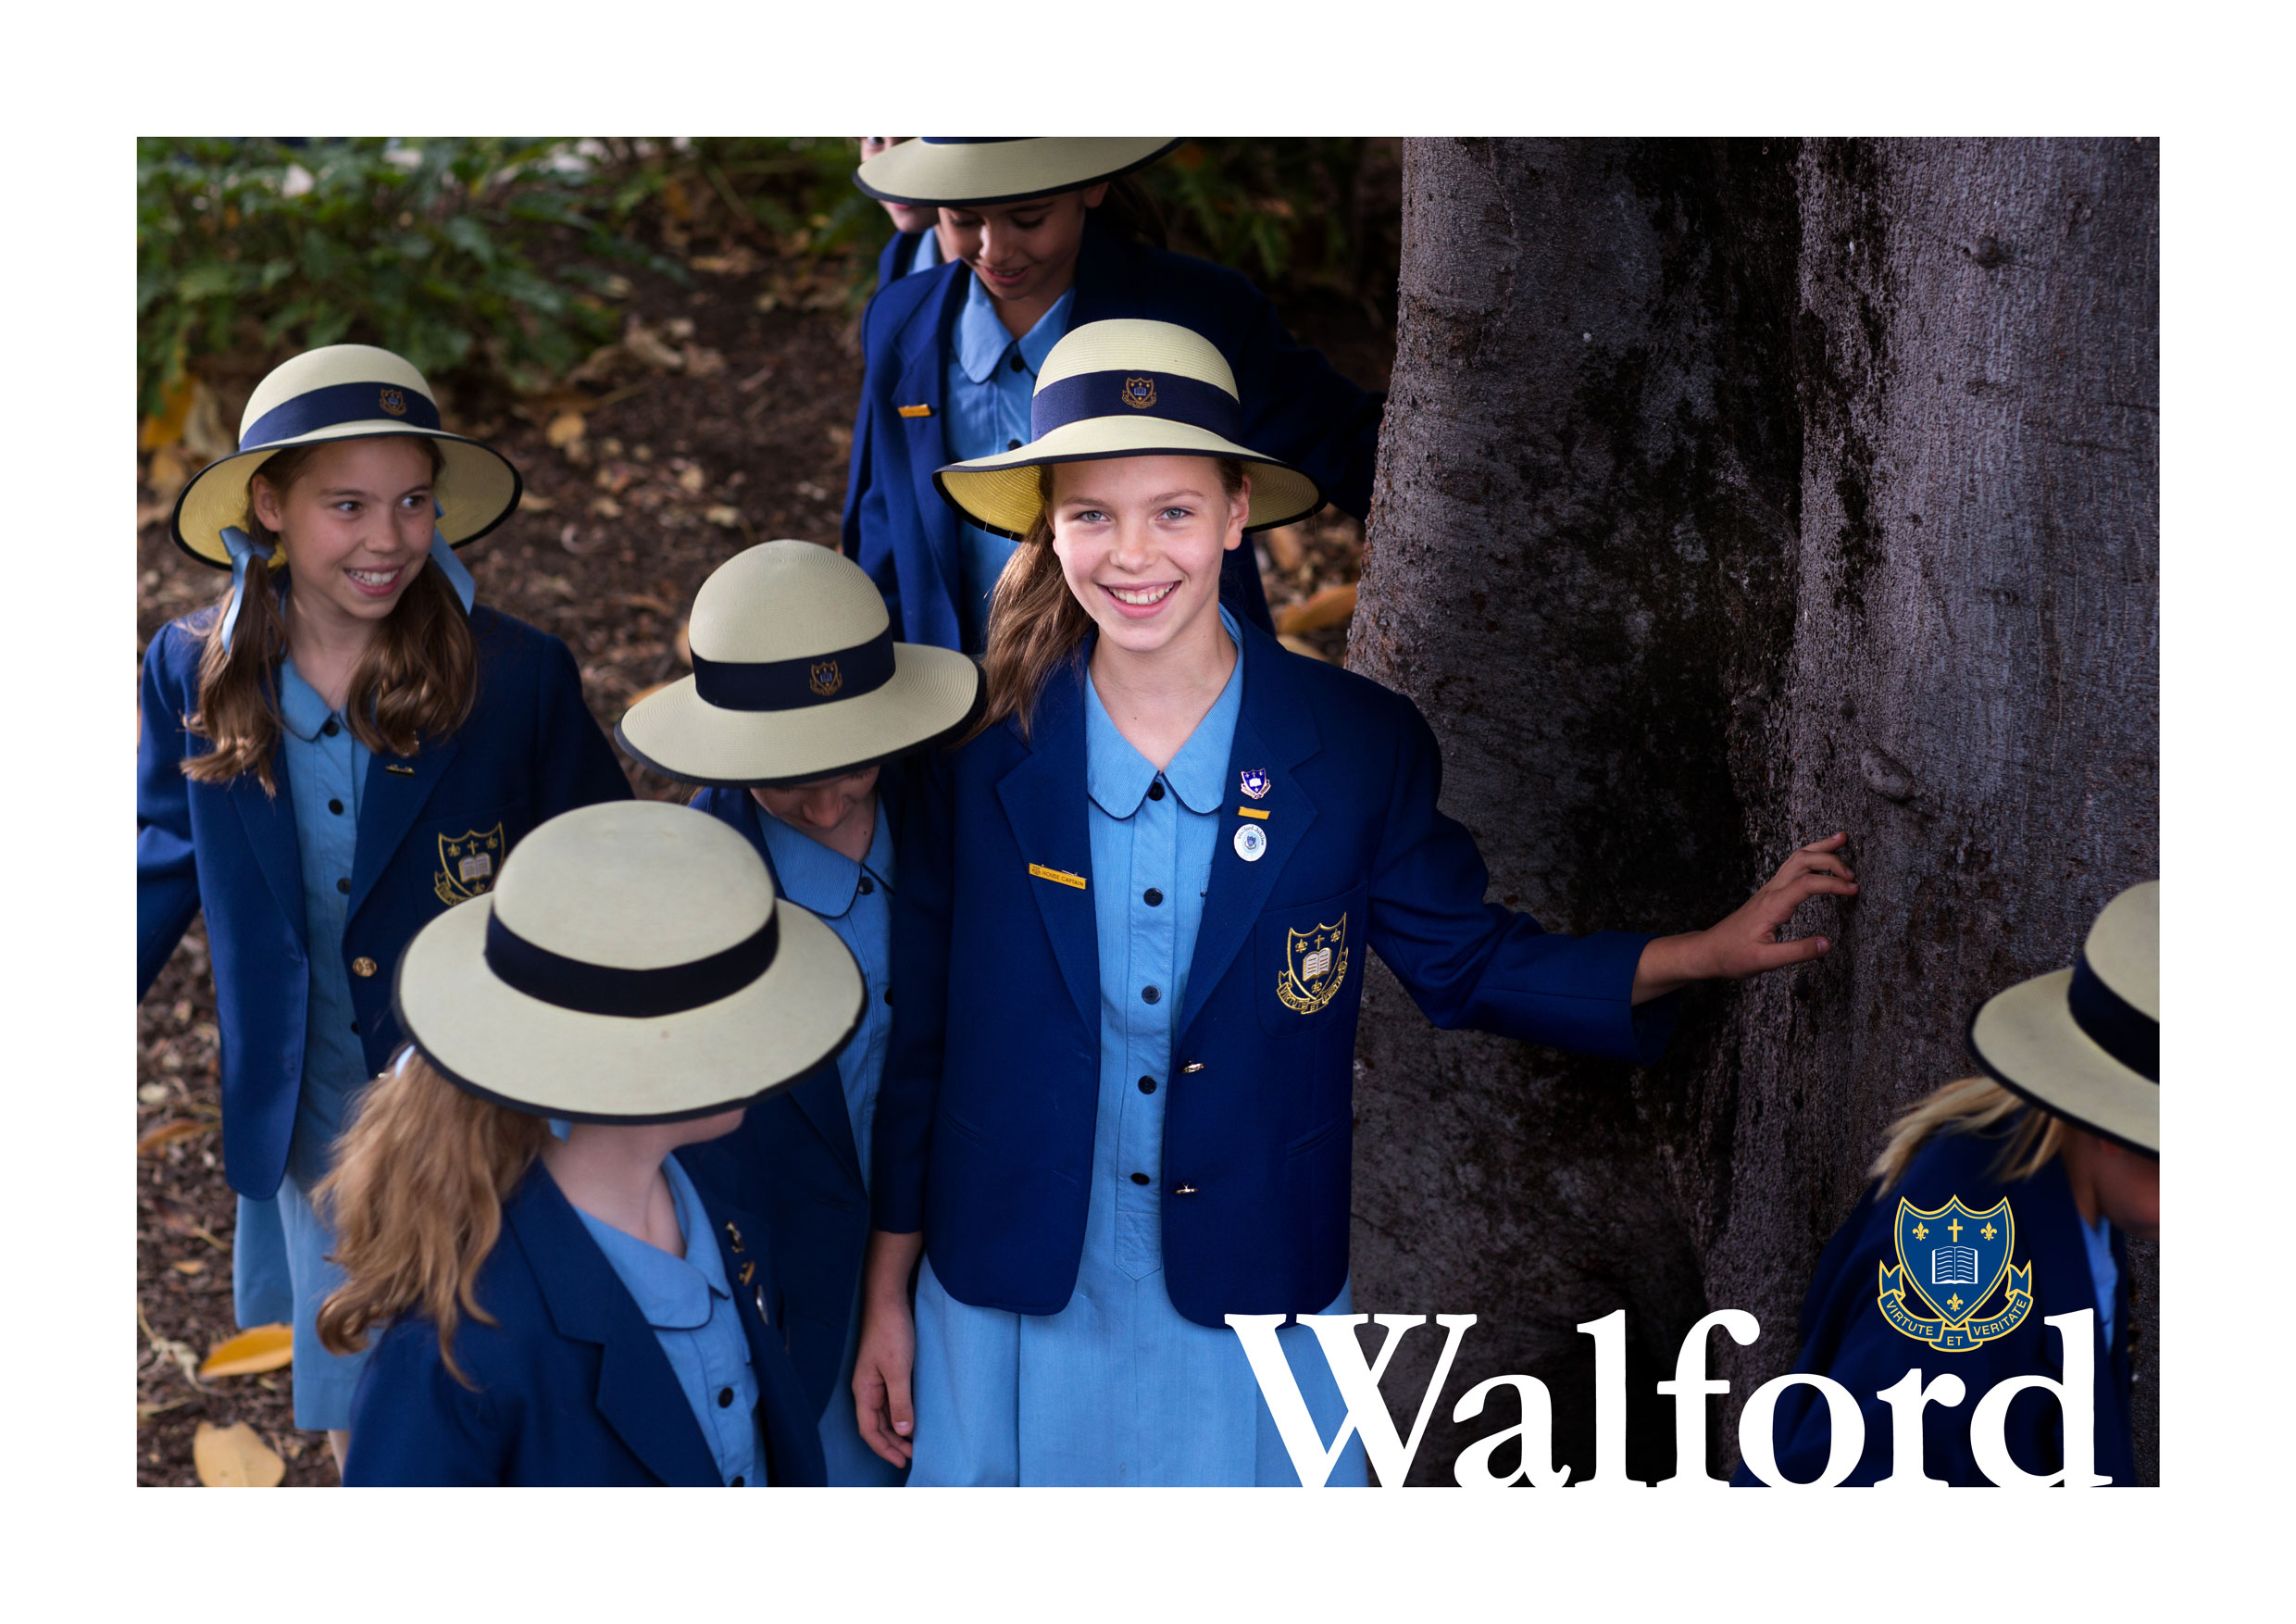 WALFORD-BRANDING-IMAGES_11